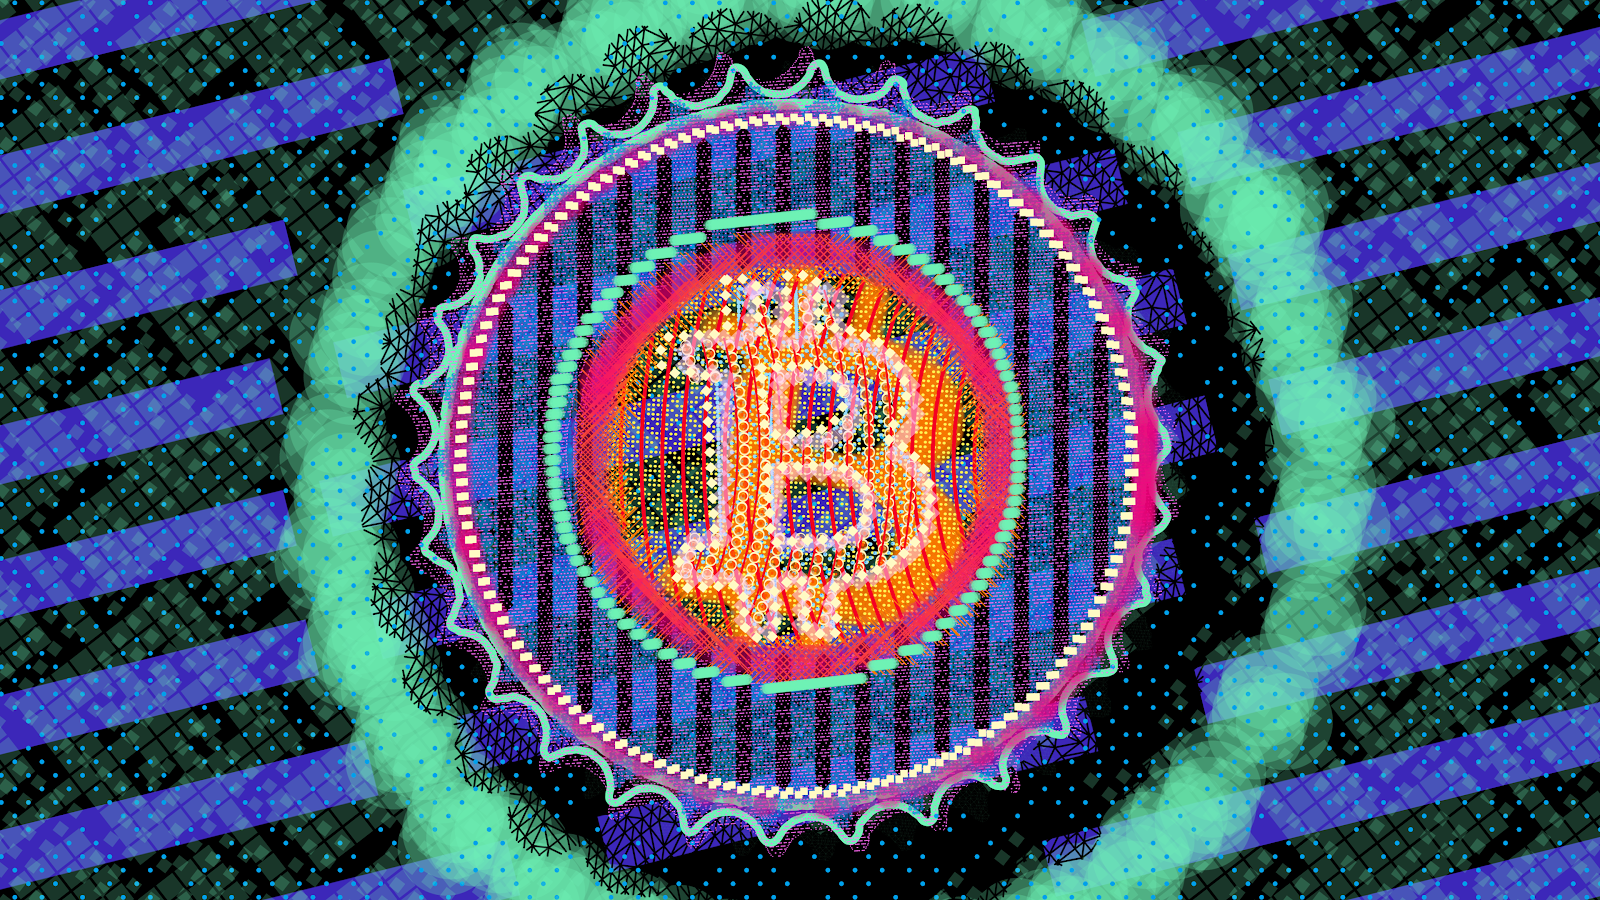 Algorithmic Crypto Art Changes Appearance To Reflect Bitcoin Volatility